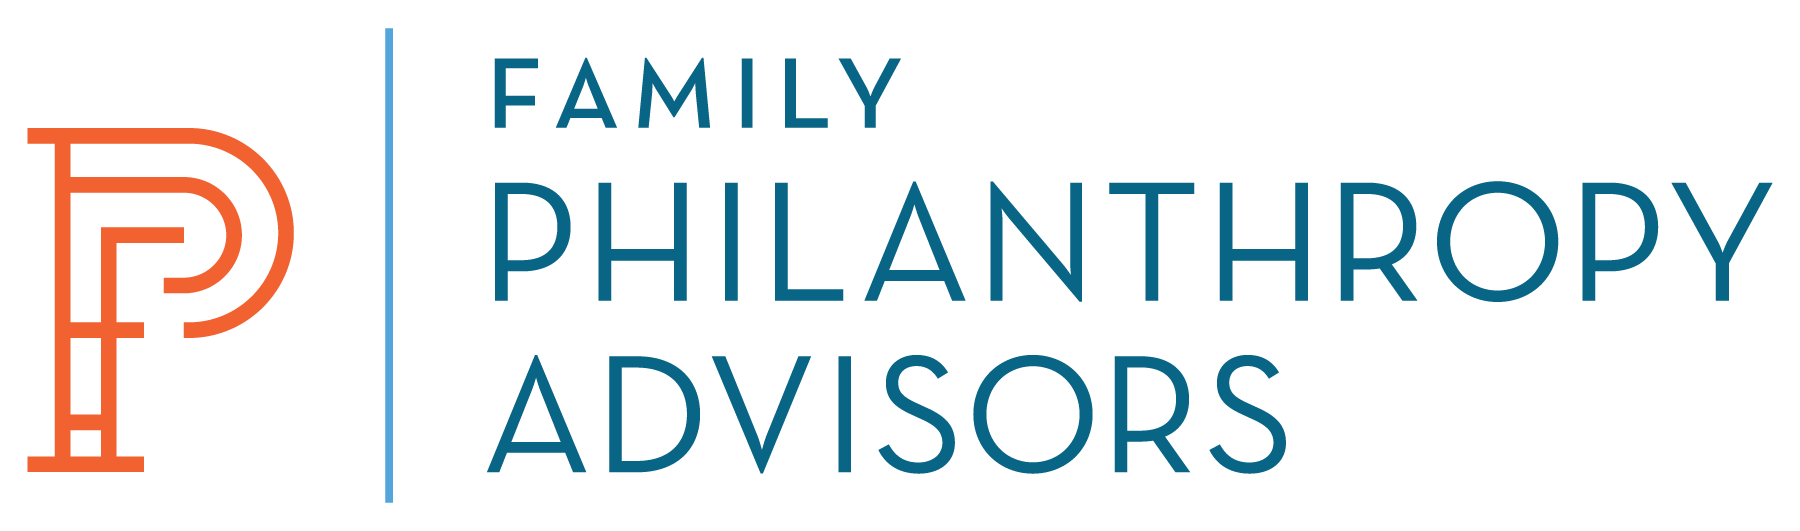 Family Philanthropy Advisors